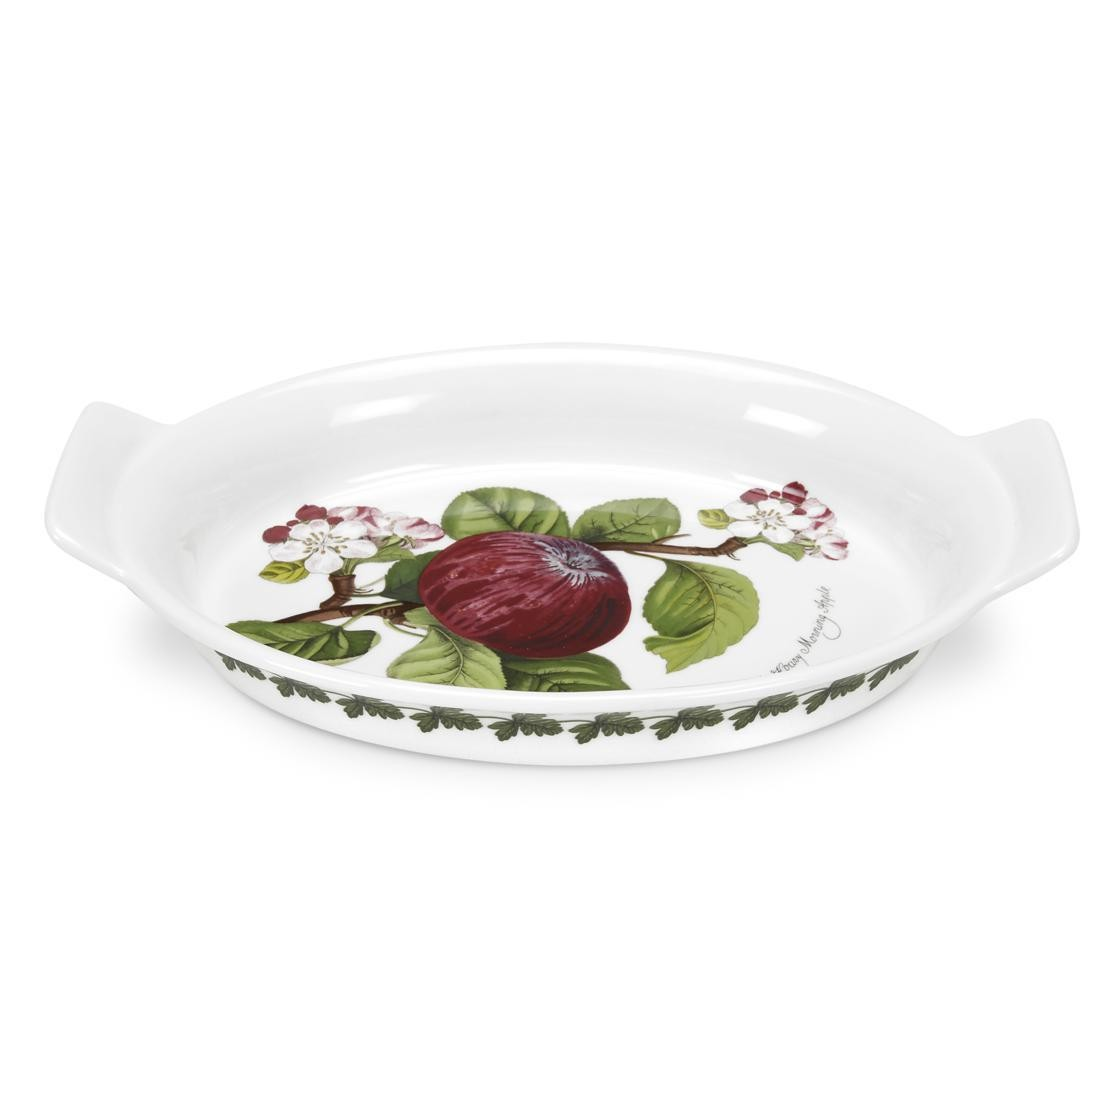 Portmeirion Pomona Gratin Dish, Oval (Hoary Morning Apple)